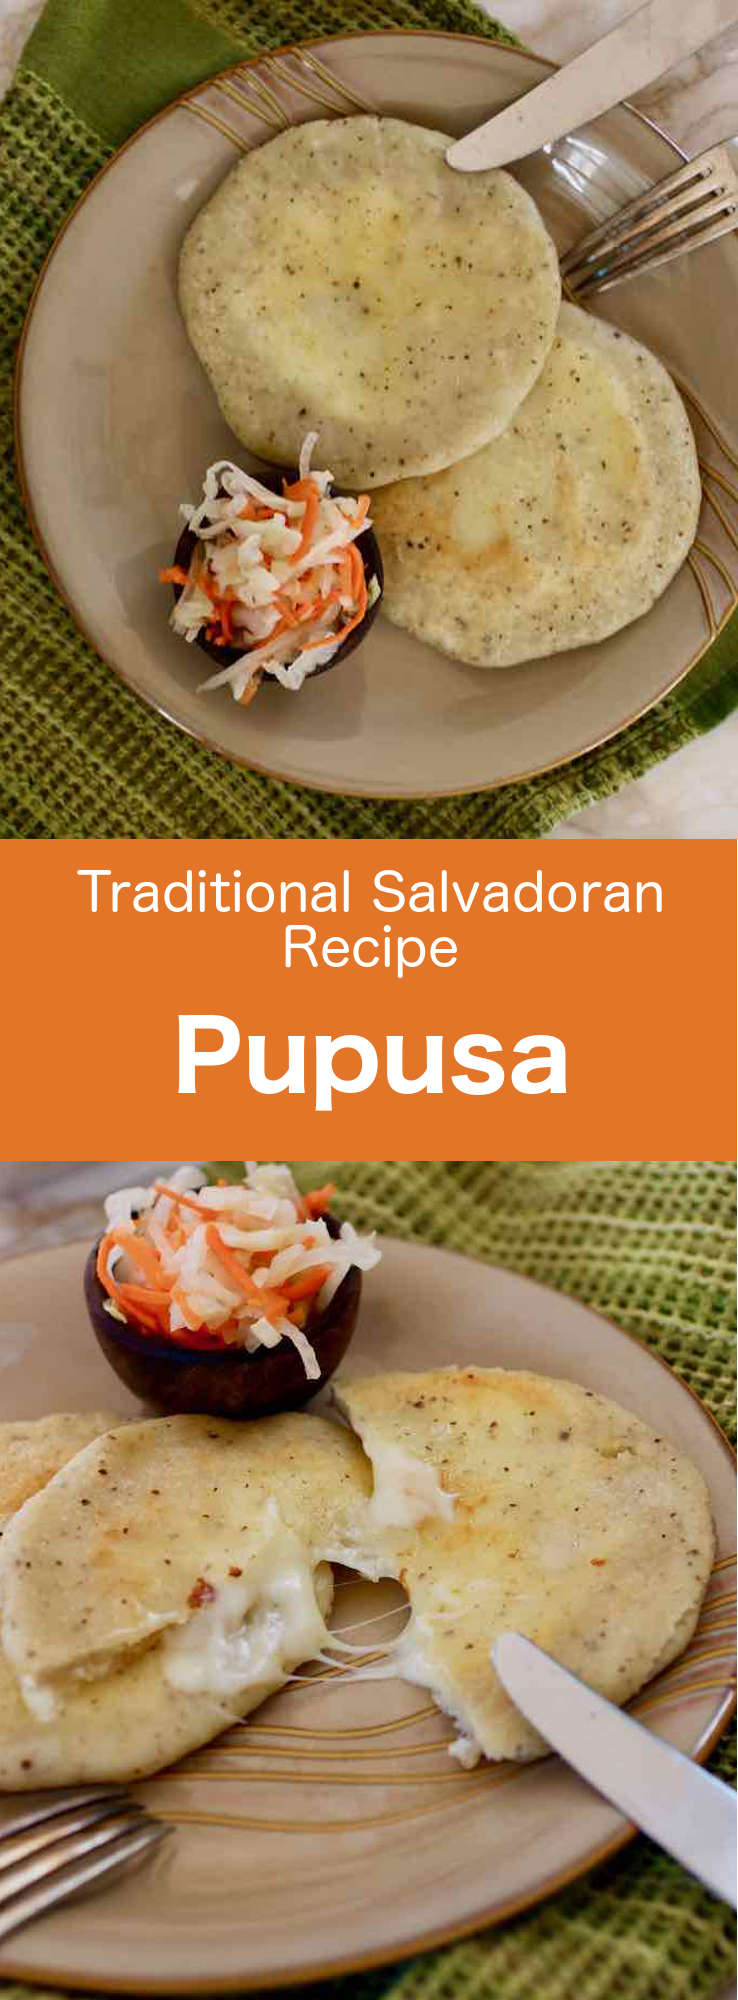 Pupusas are maize flour Salvadorian pancake filled with cheese, refried beans (frijoles refritos) or pork (chicharrón). #ElSalvador #SalvadoranFood #SalvadoranCuisine #SalvadoranRecipe #WorldCuisine #196flavors